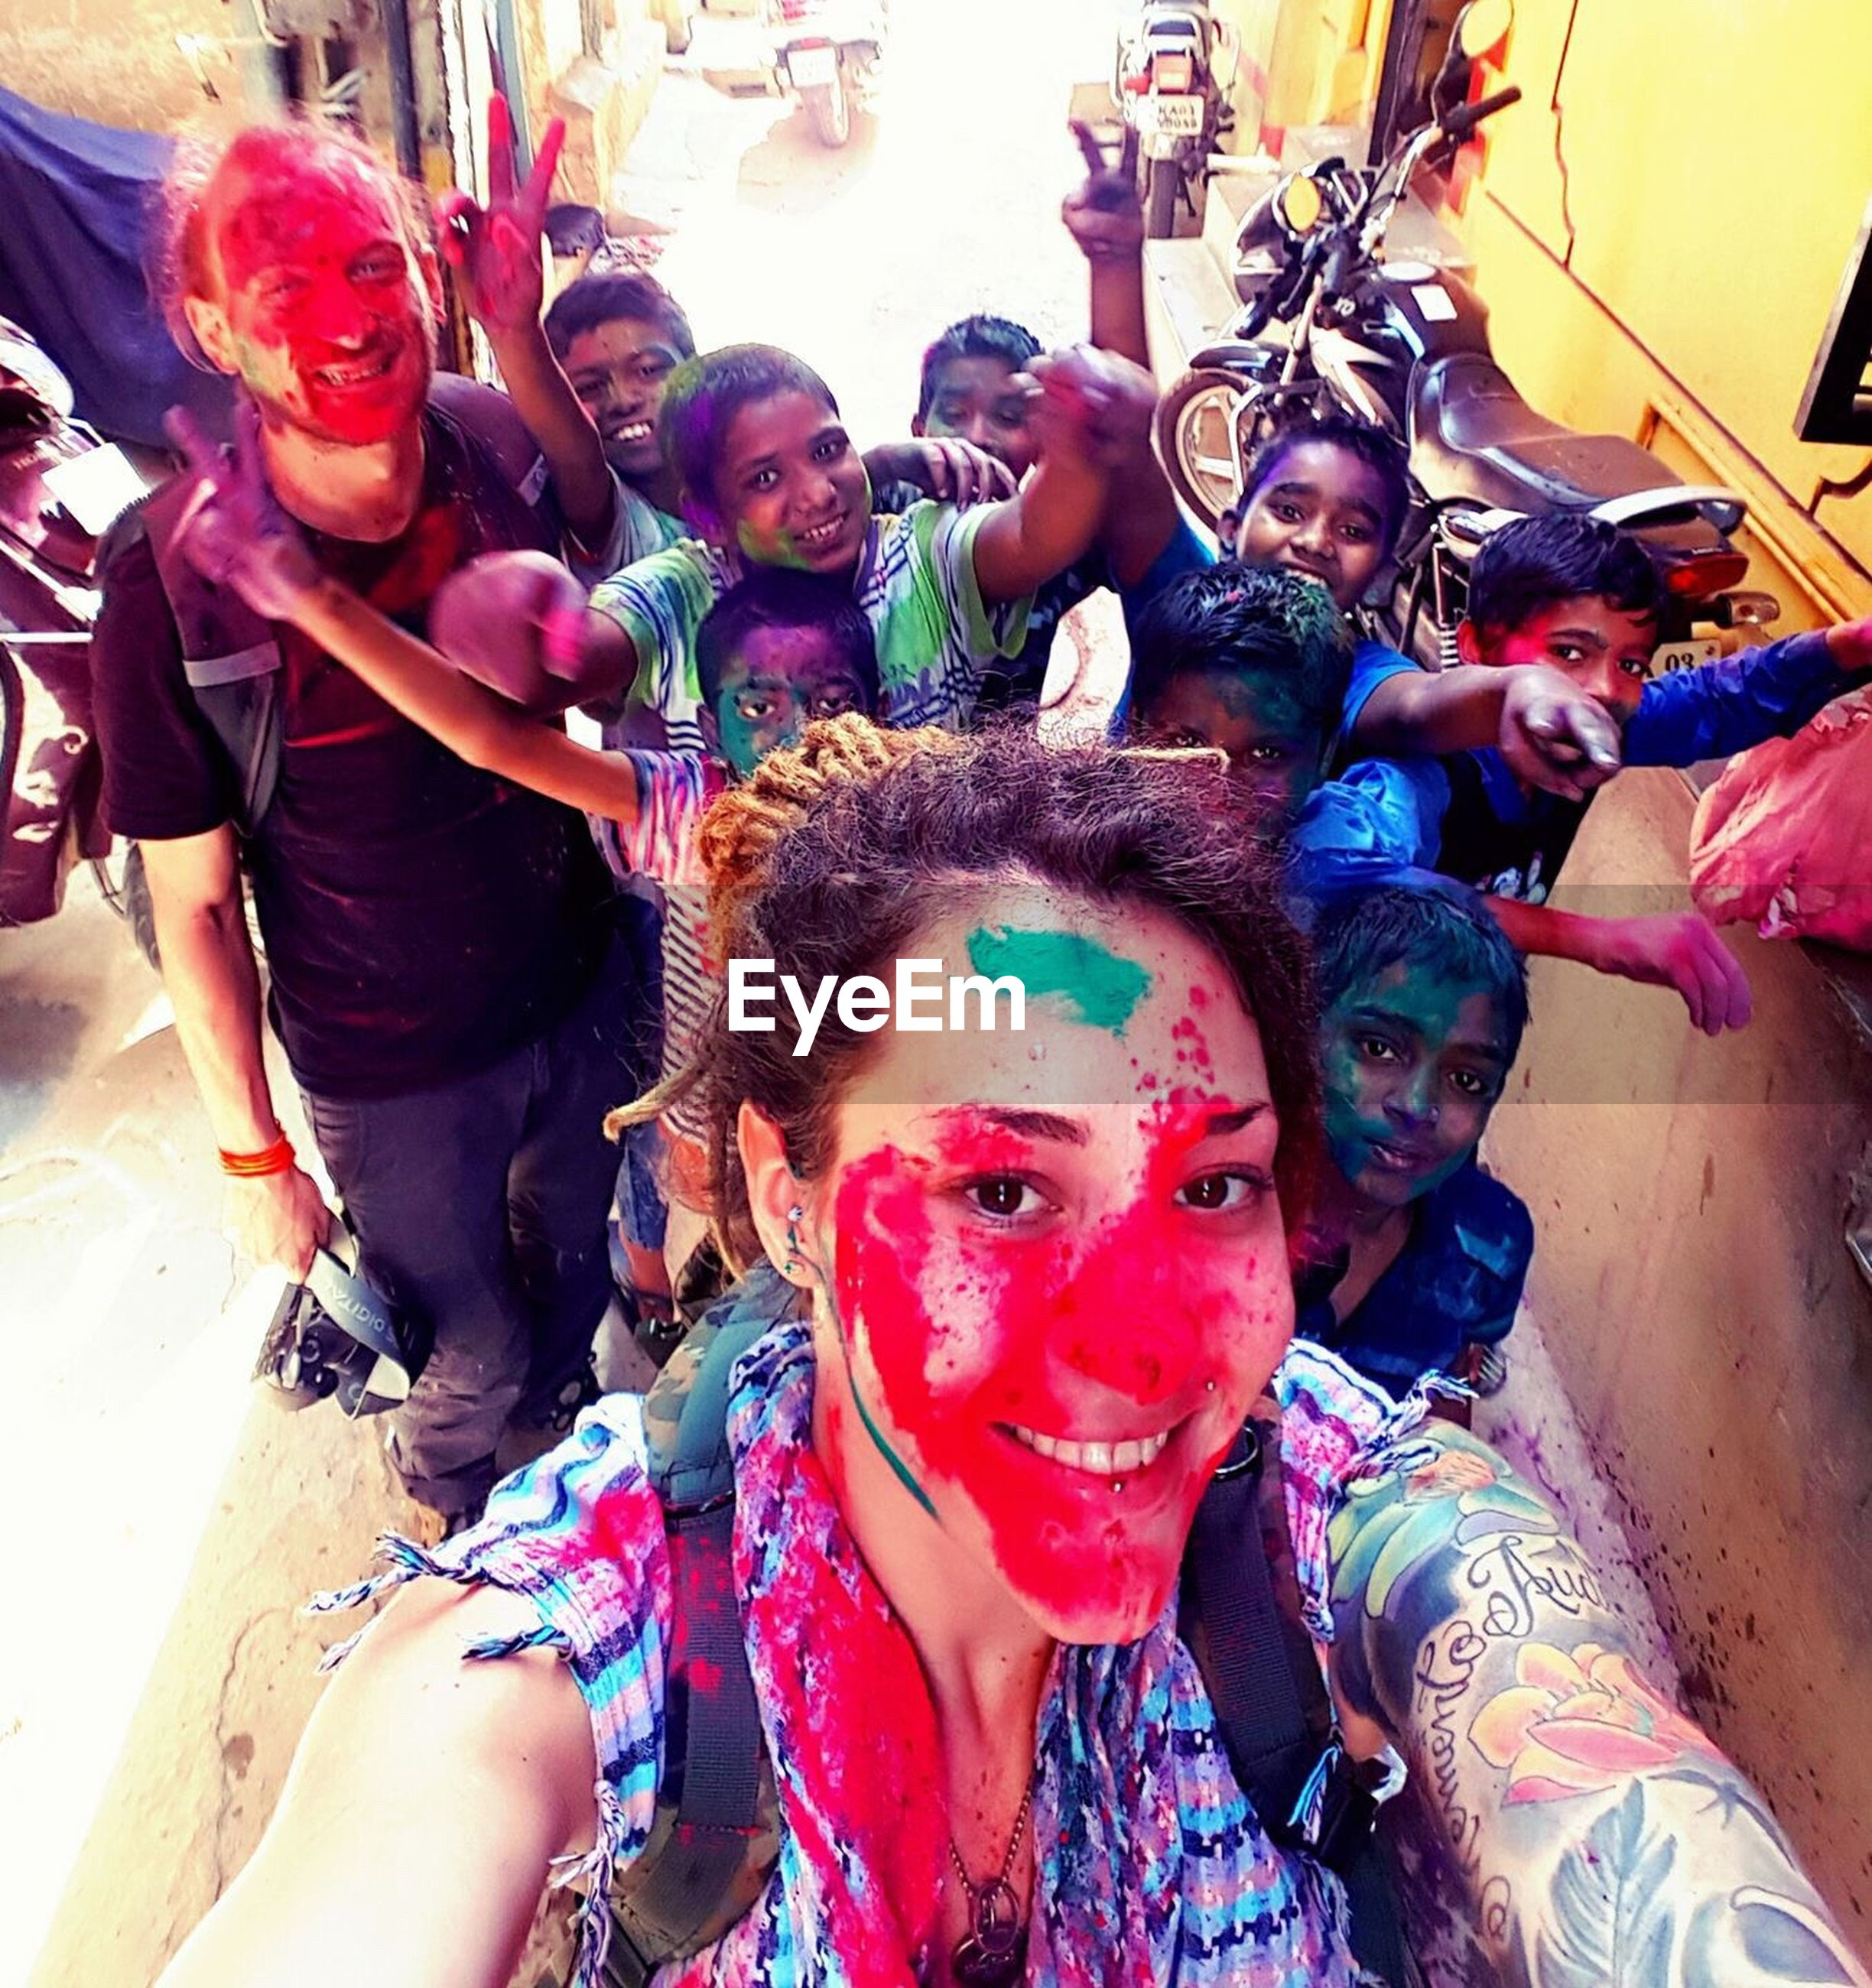 celebration, fun, holi, enjoyment, traditional festival, multi colored, cultures, cheerful, adults only, real people, happiness, face paint, party - social event, people, adult, event, friendship, outdoors, elephant, day, togetherness, powder paint